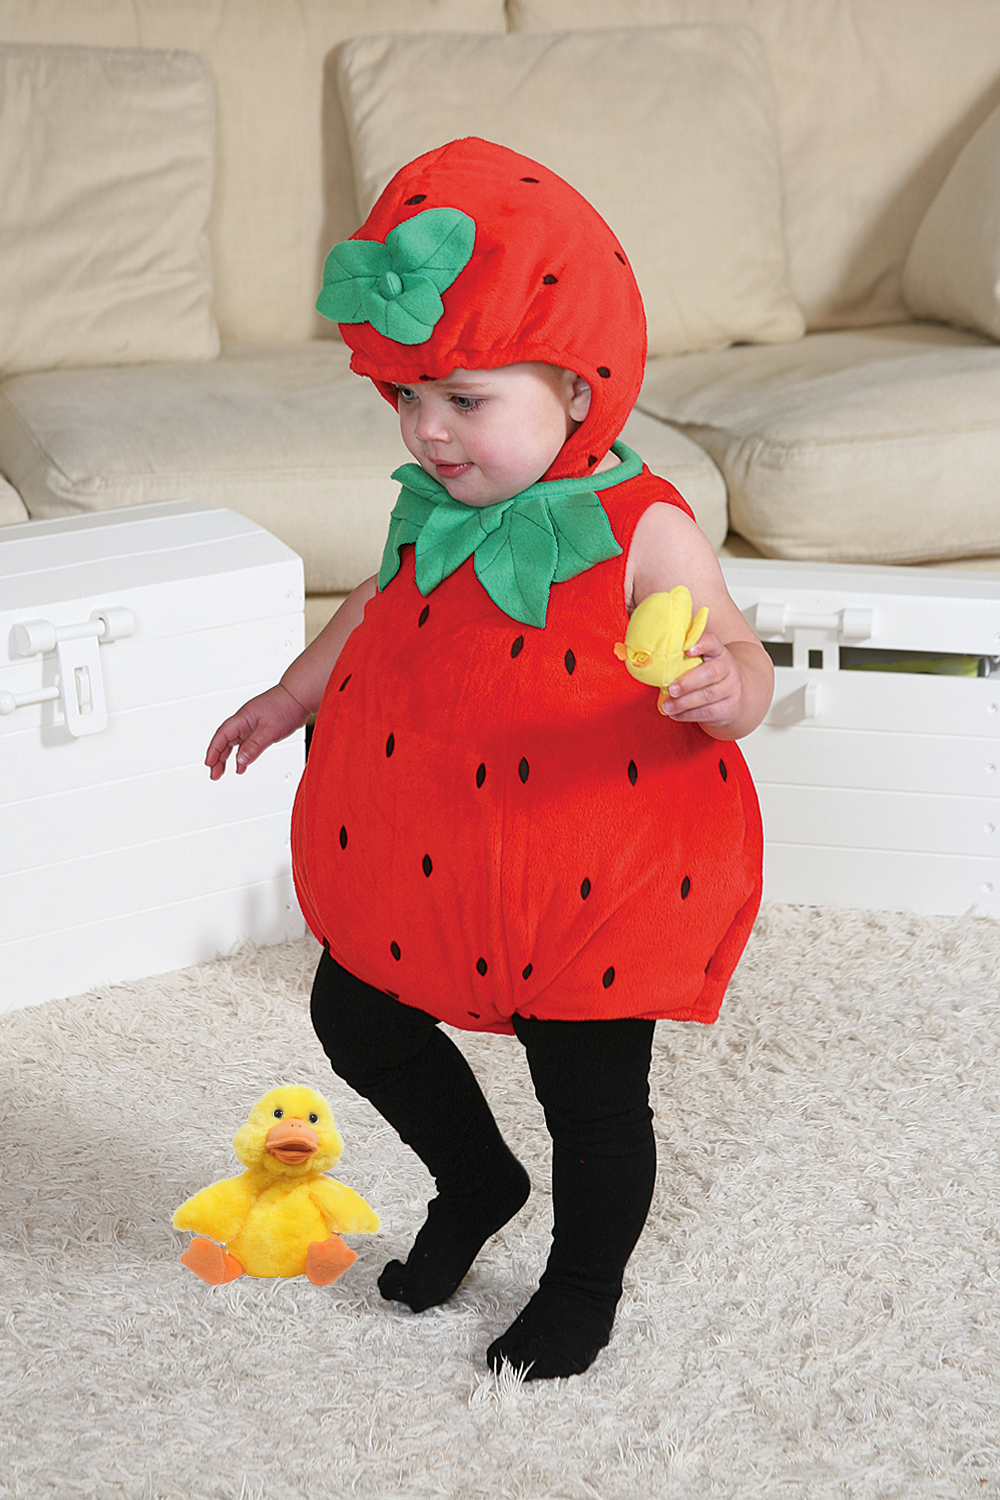 More on Baby Strawberry Costume: Dress up your little one to look sweet as a strawberry in a Strawberry Costume for babies! The costume includes a red romper designed to look like a strawberry. Complete the look with the matching strawberry hat and the included green and white striped tights to make your little one look like their favorite fruit!